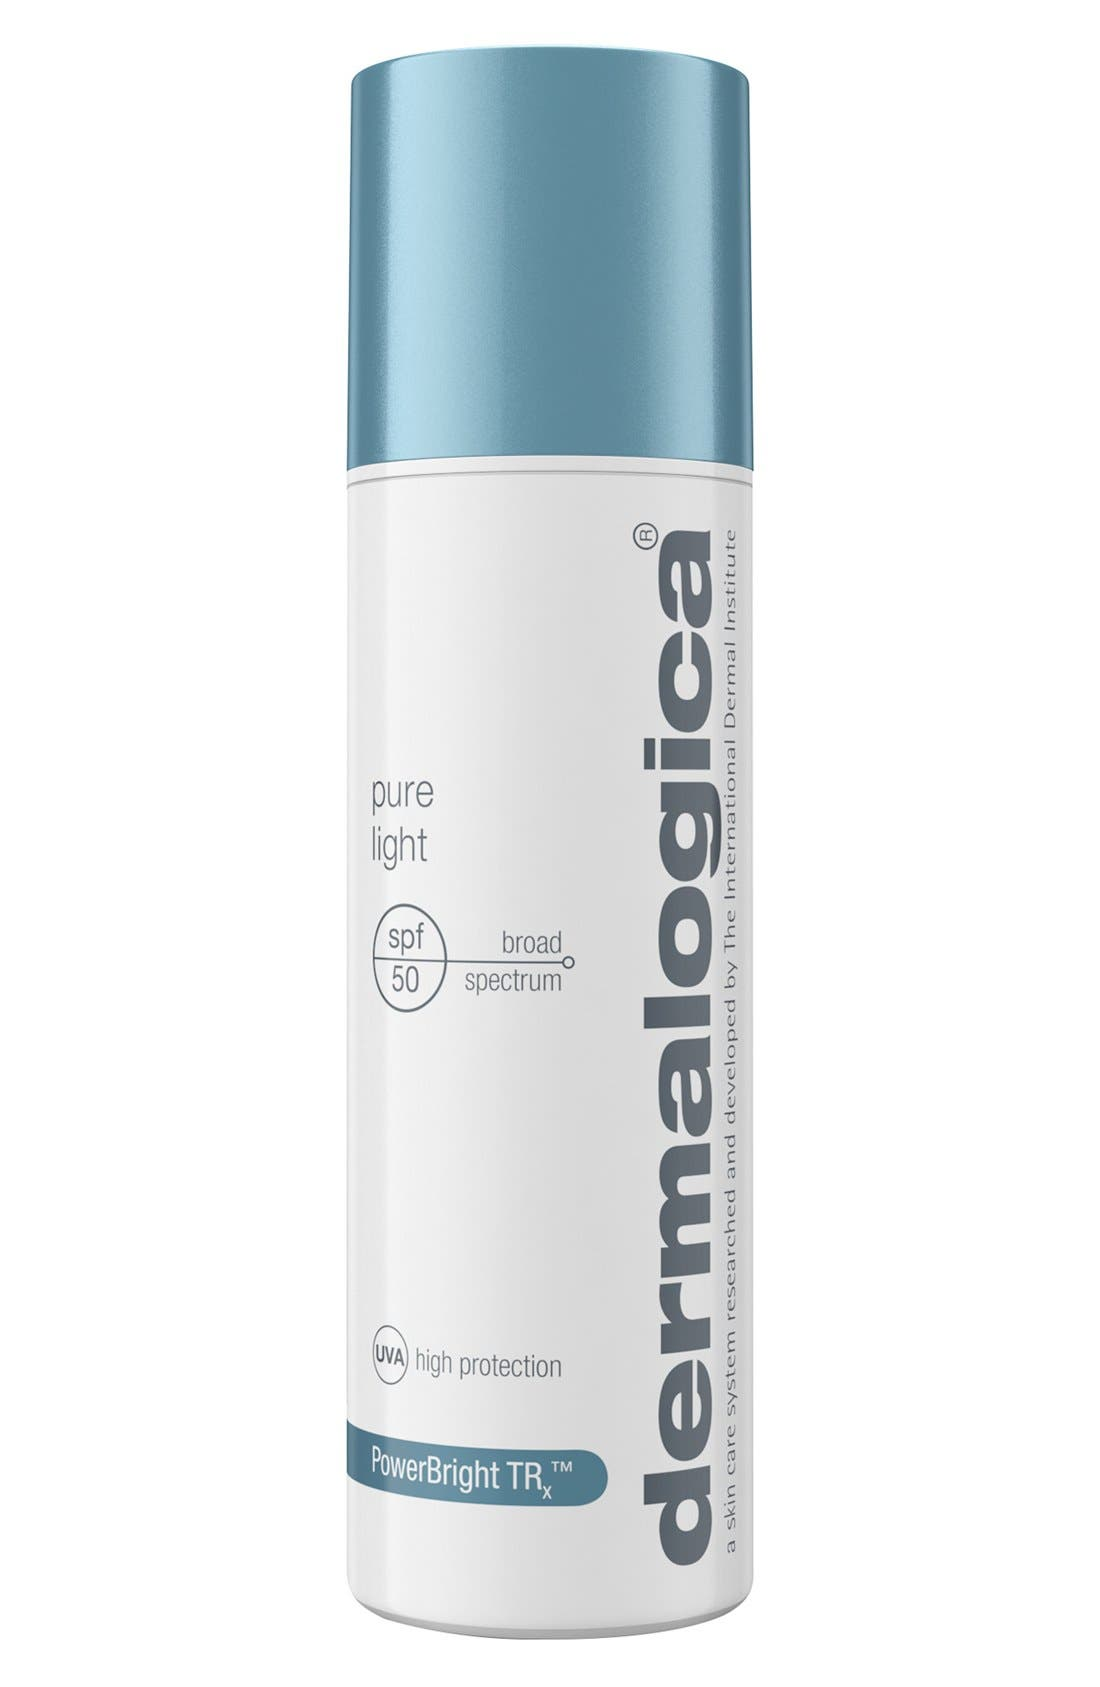 dermalogica® Pure Light SPF 50